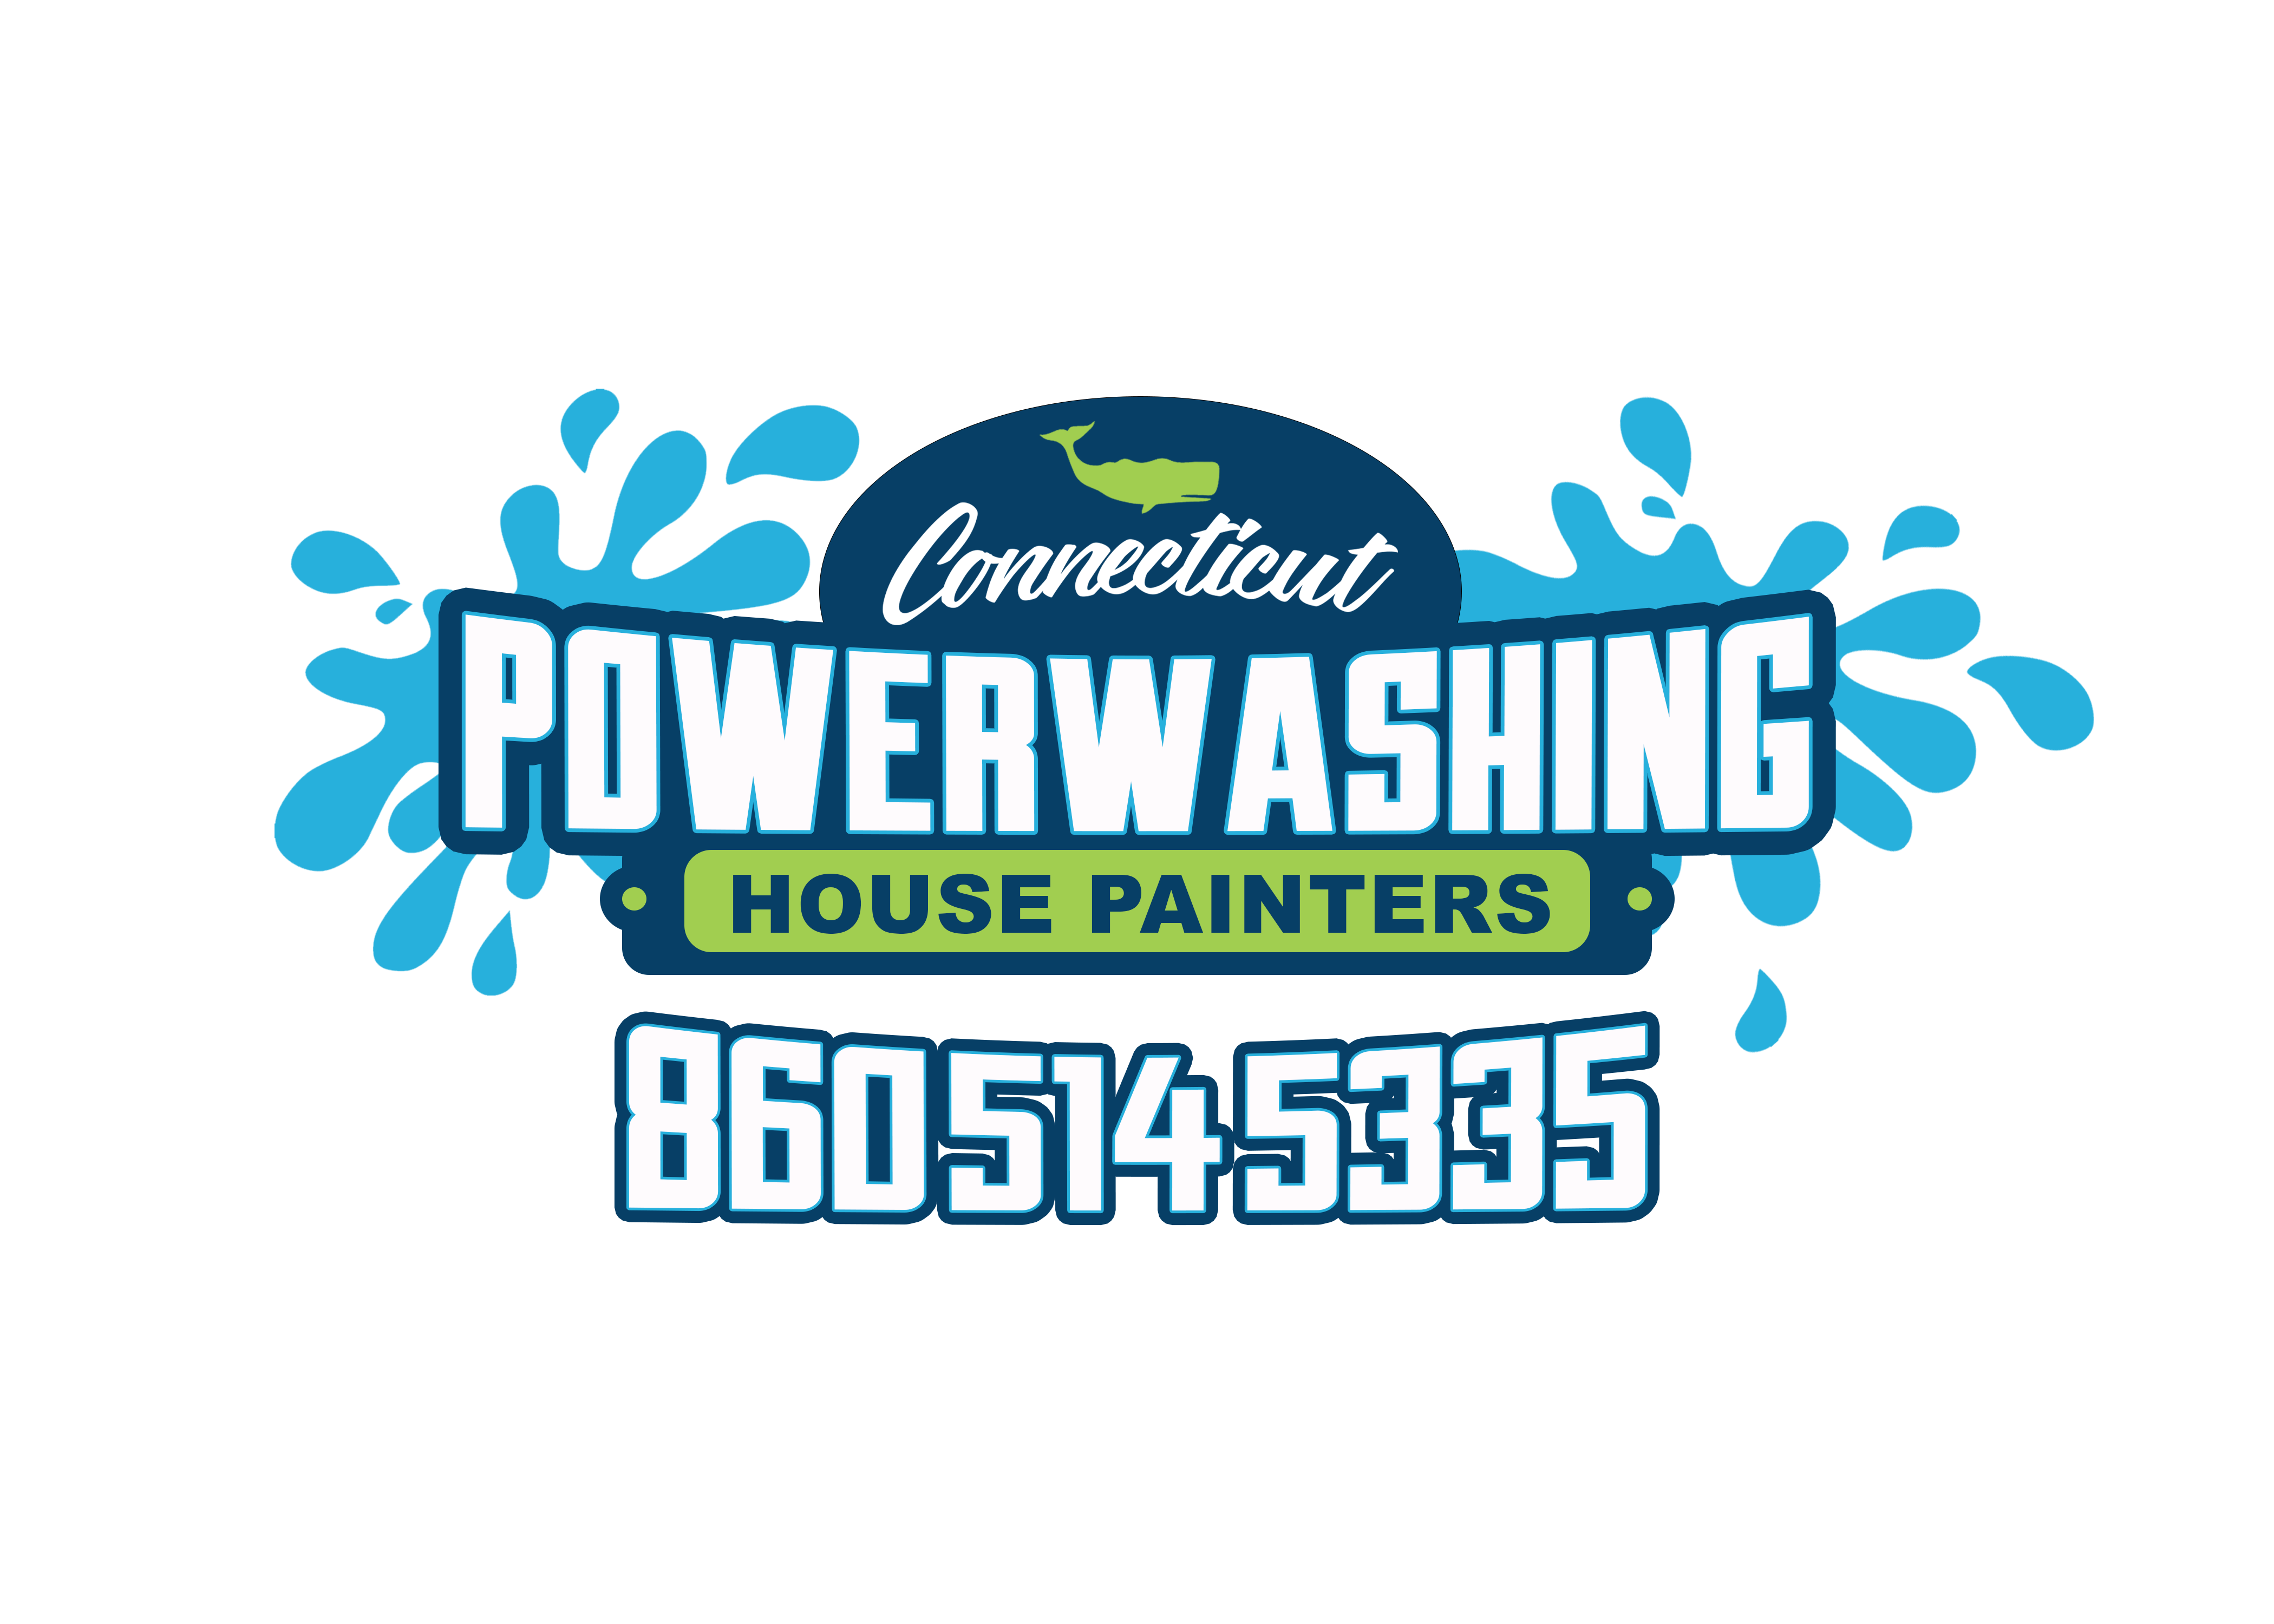 CT Power Washing & Roof Cleaning